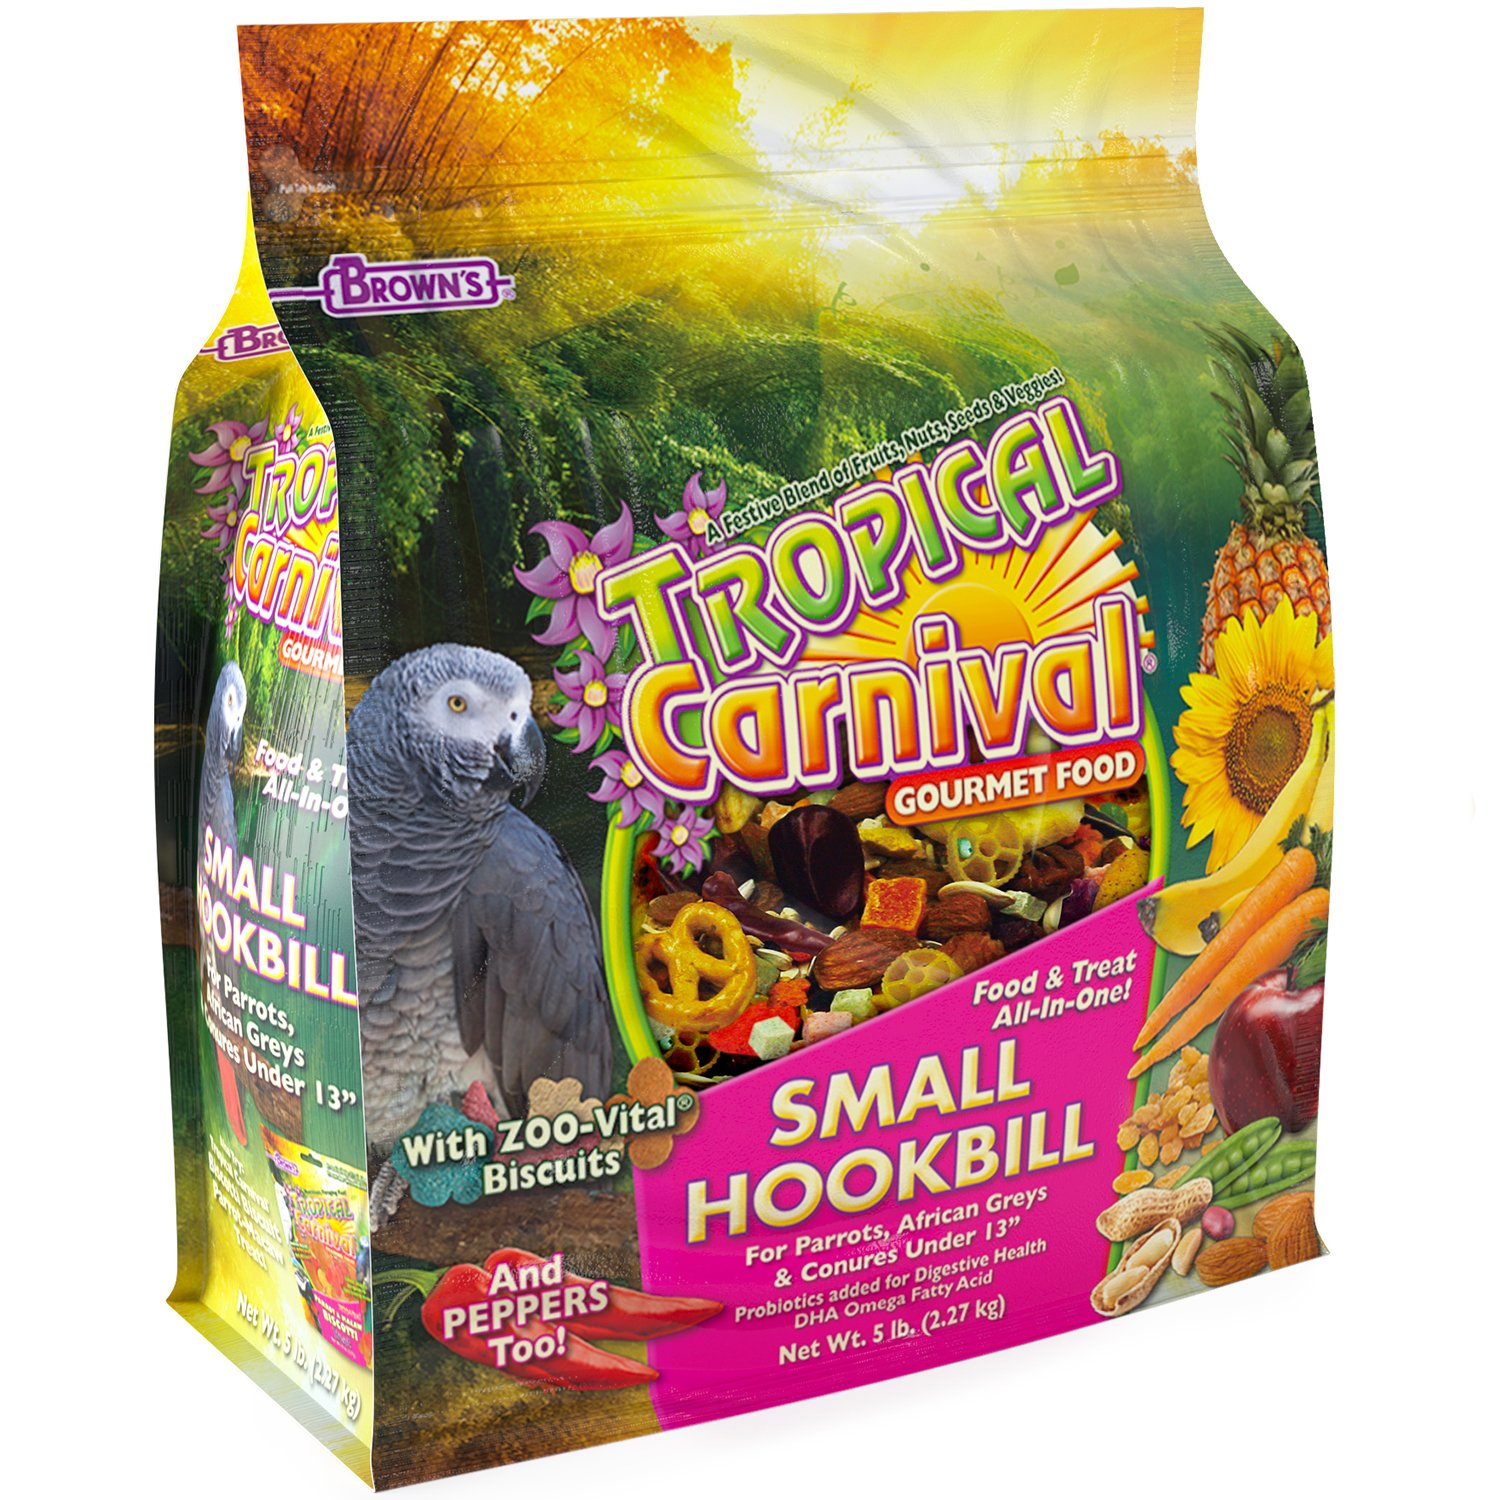 Tropical Carnival F.M. Brown's Gourmet Bird Food Parrots, African Greys Conures Under 13'' - Probiotics Digestive Health, Vitamin-Nutrient Fortified Daily Diet